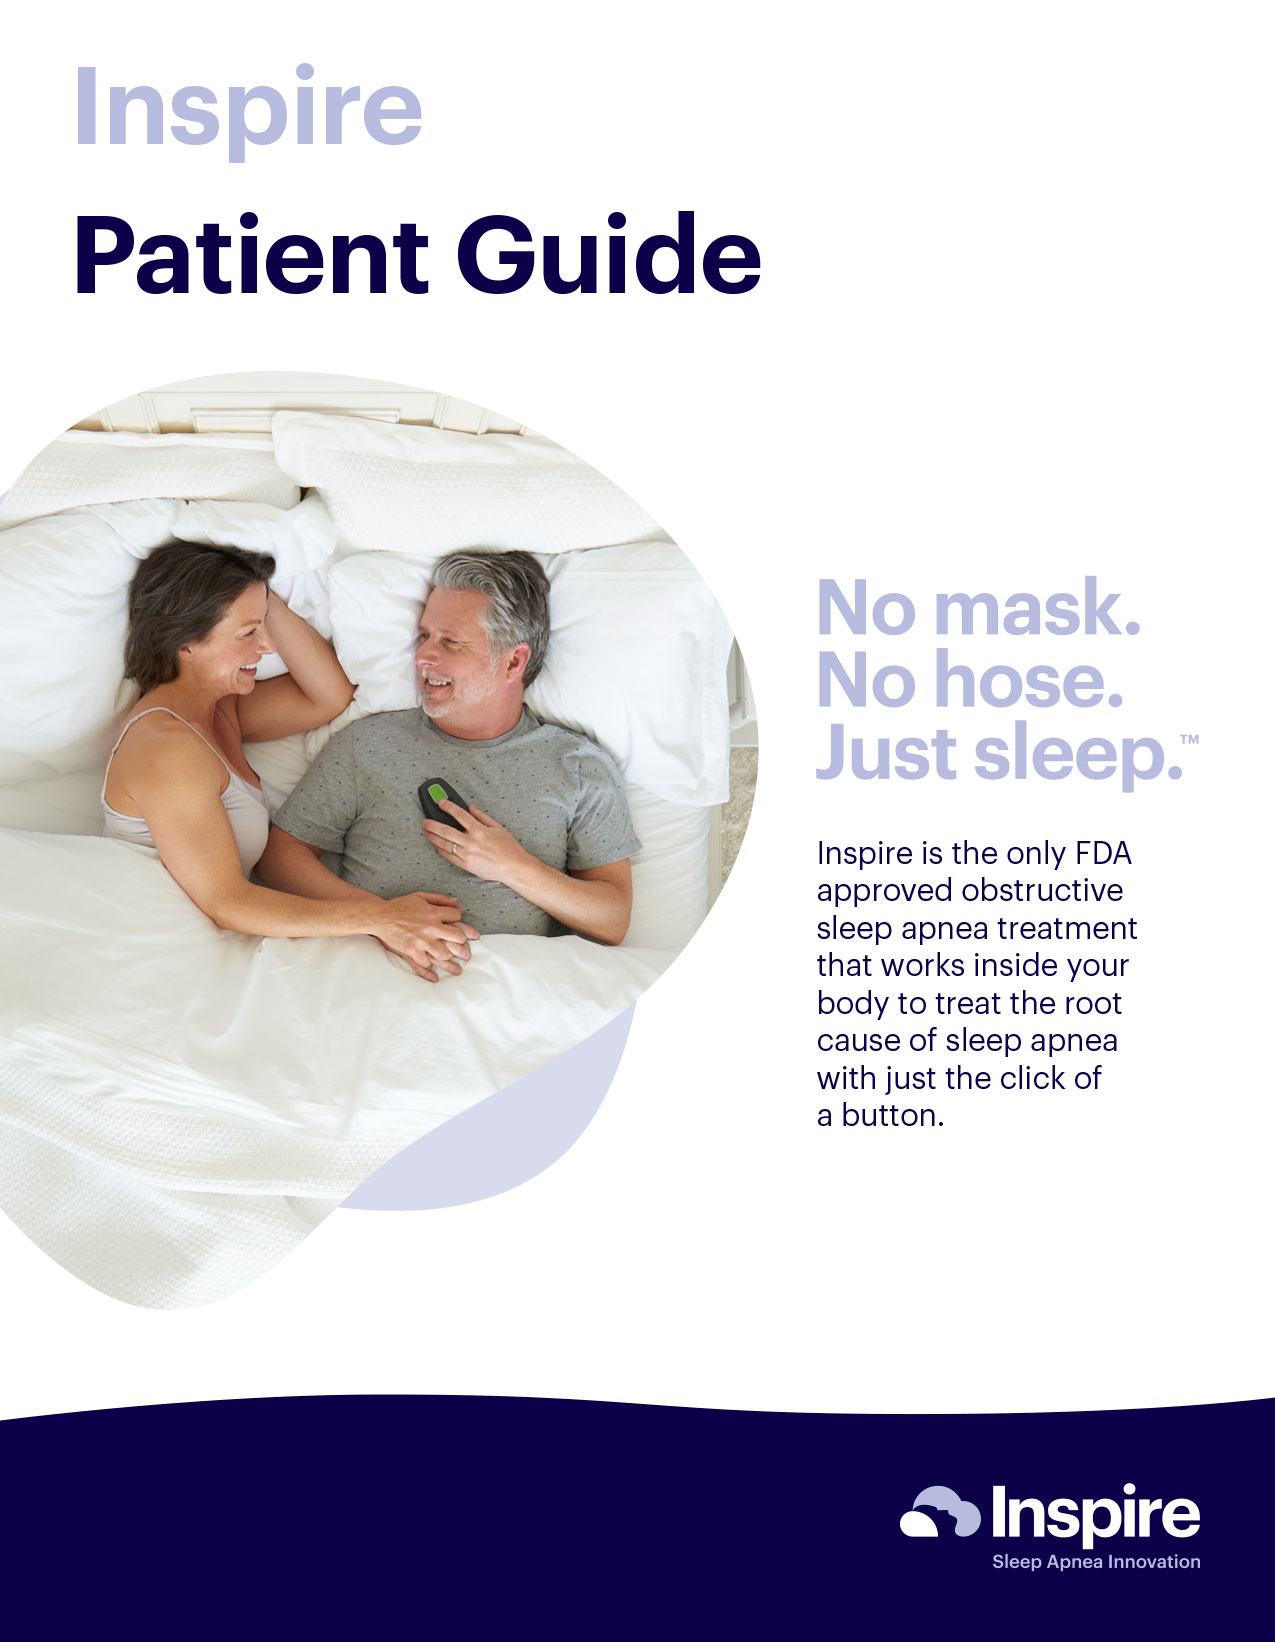 Inspire Patient Guide